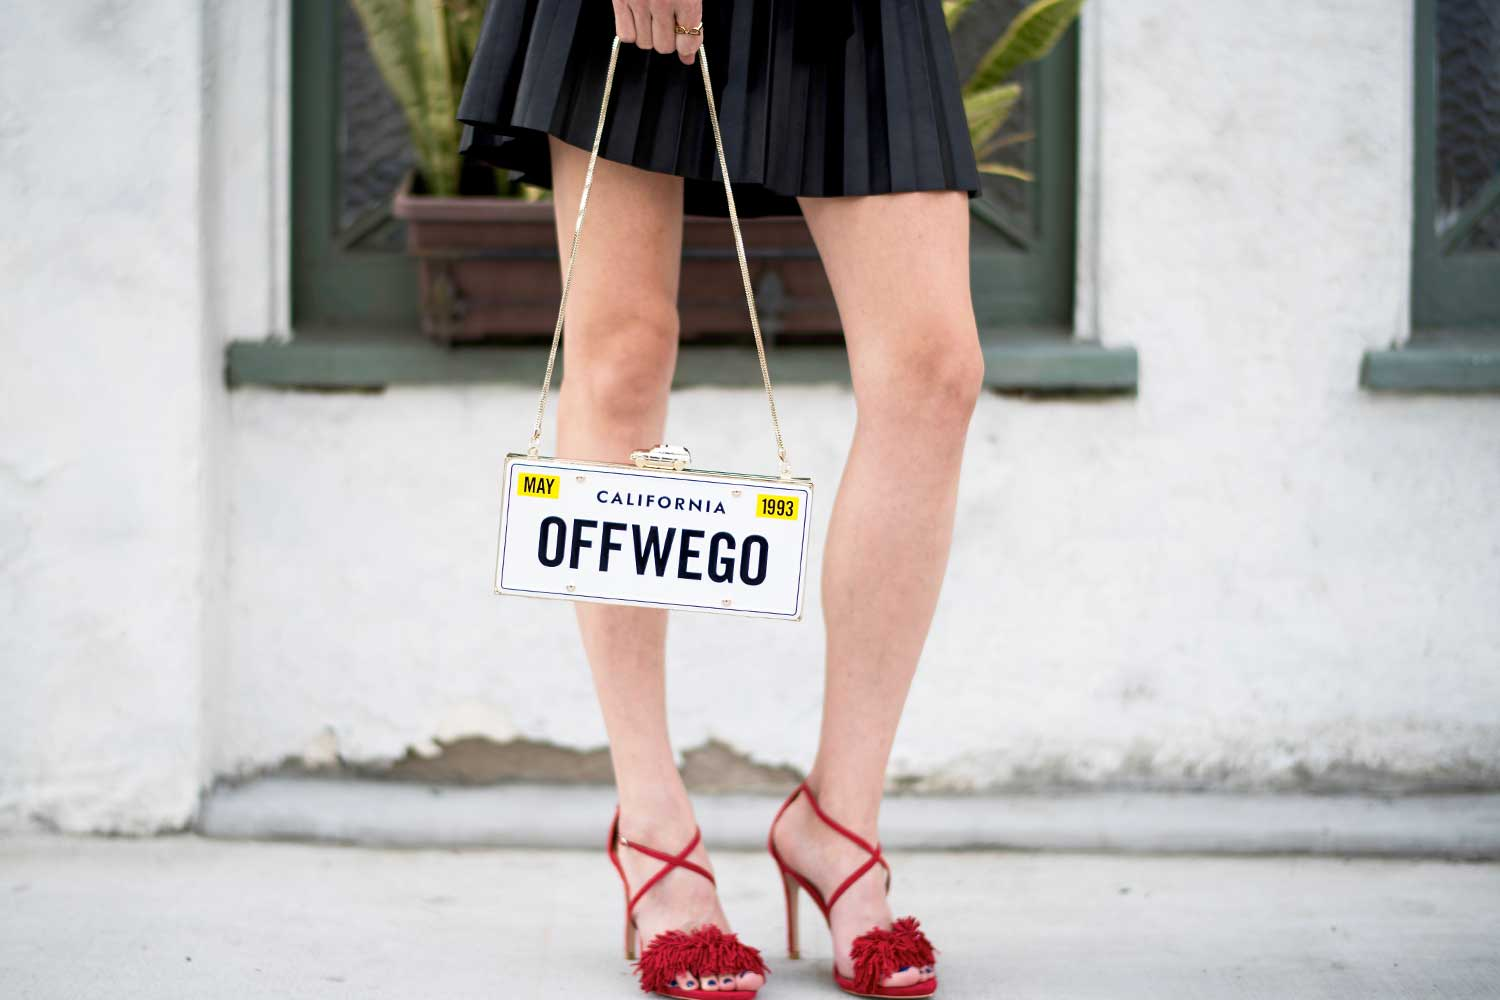 jenna-pilant-lucky-little-mustardseed-san-diego-style-blogger-san-diego-fashion-blogger-how-to-transition-from-summer-to-fall-clothing-4